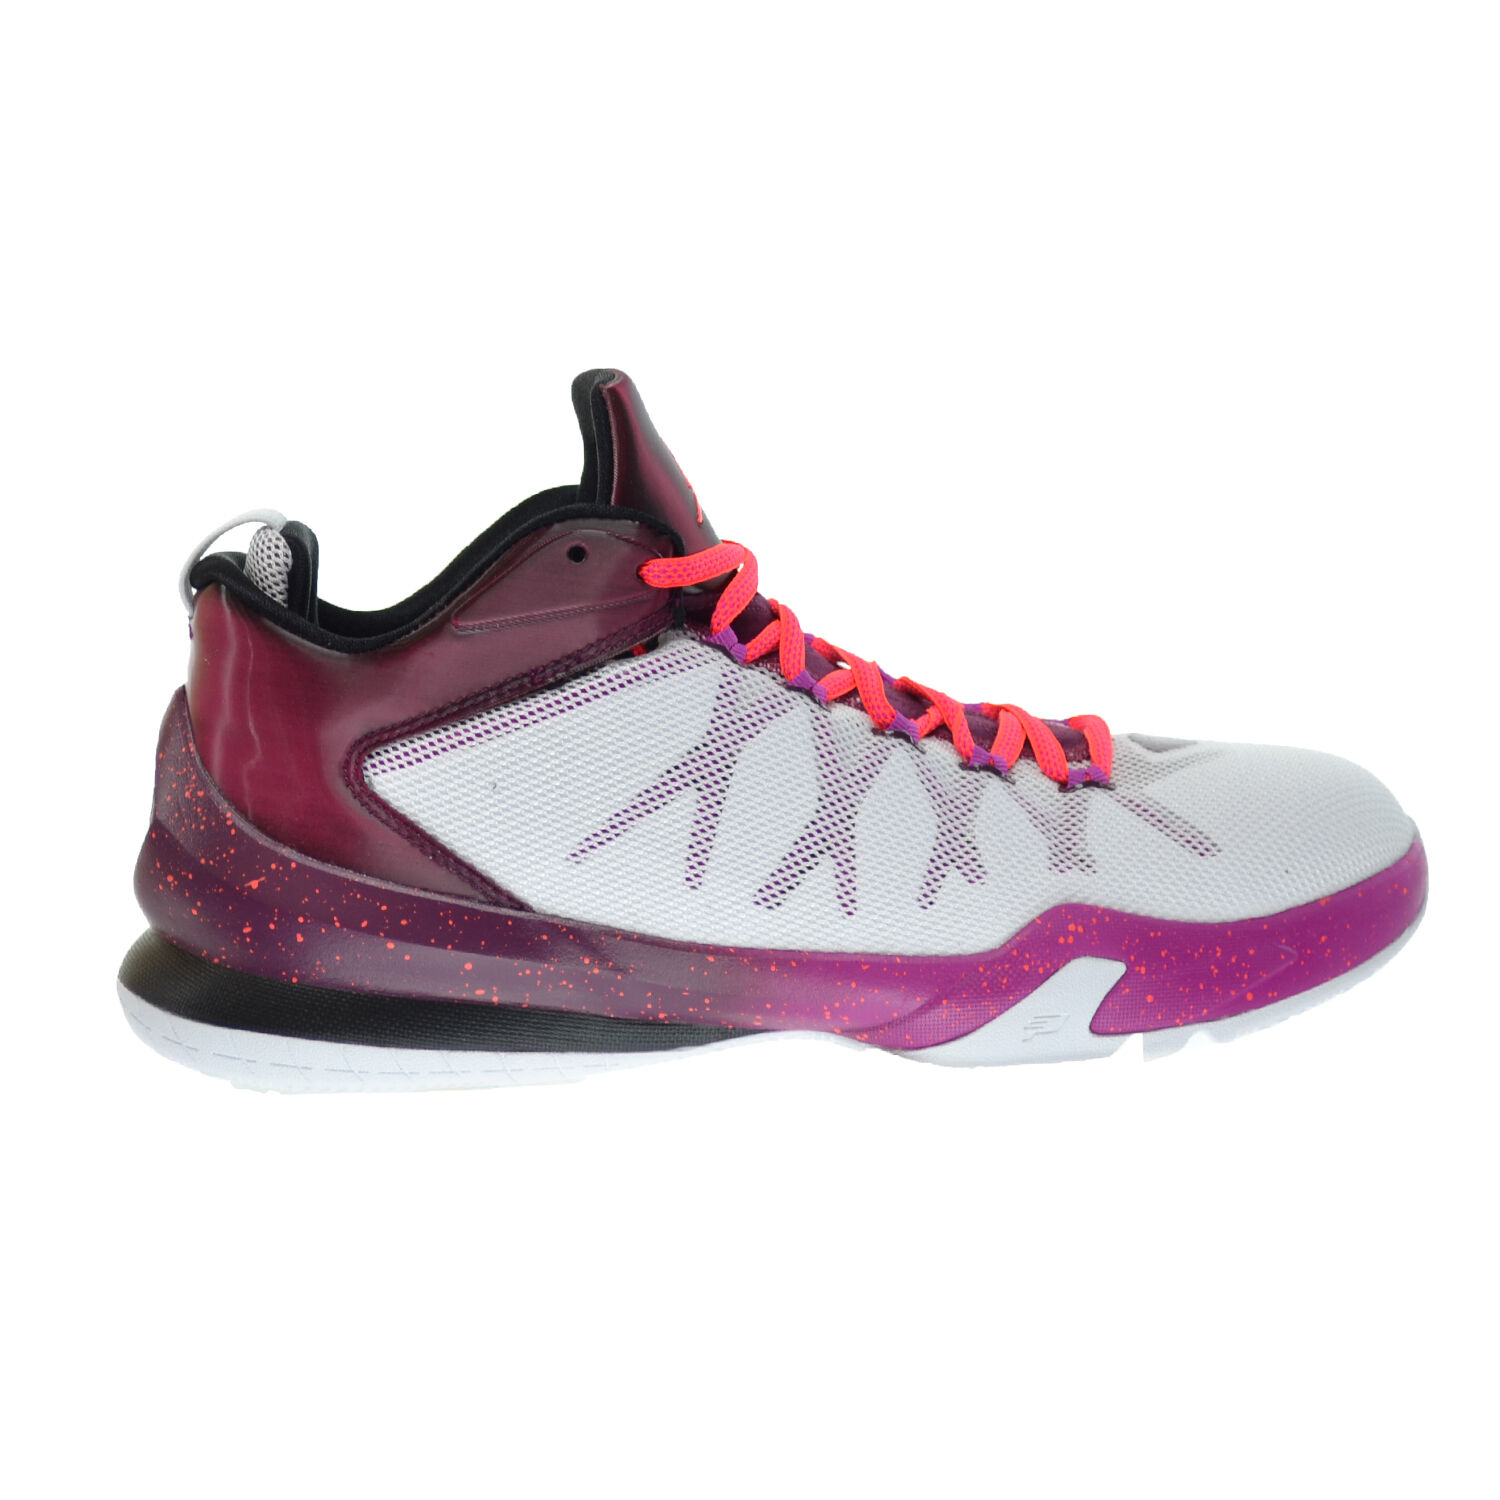 Man's/Woman's Jordan CP3.VIII AE Men's Basketball Shoes White/Infrared White/Infrared Shoes 23-Fuchsia 725173-113 Easy to use new Popular recommendation GH57333 7f8360